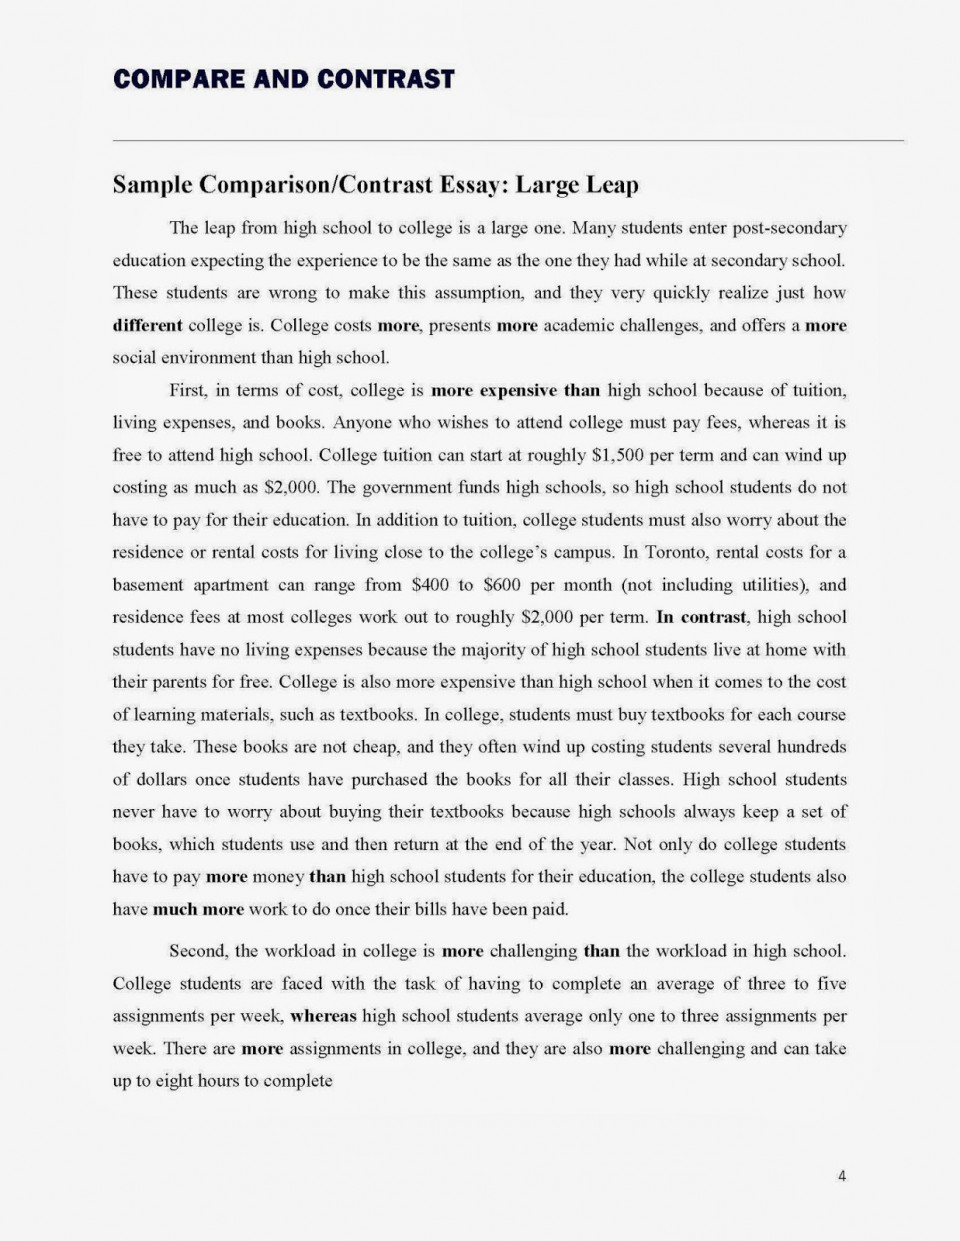 003 Comparison And Contrast Essay Topics Compare20and20contrast20essay Page 4 Unforgettable For High School Compare Prompts Middle 960